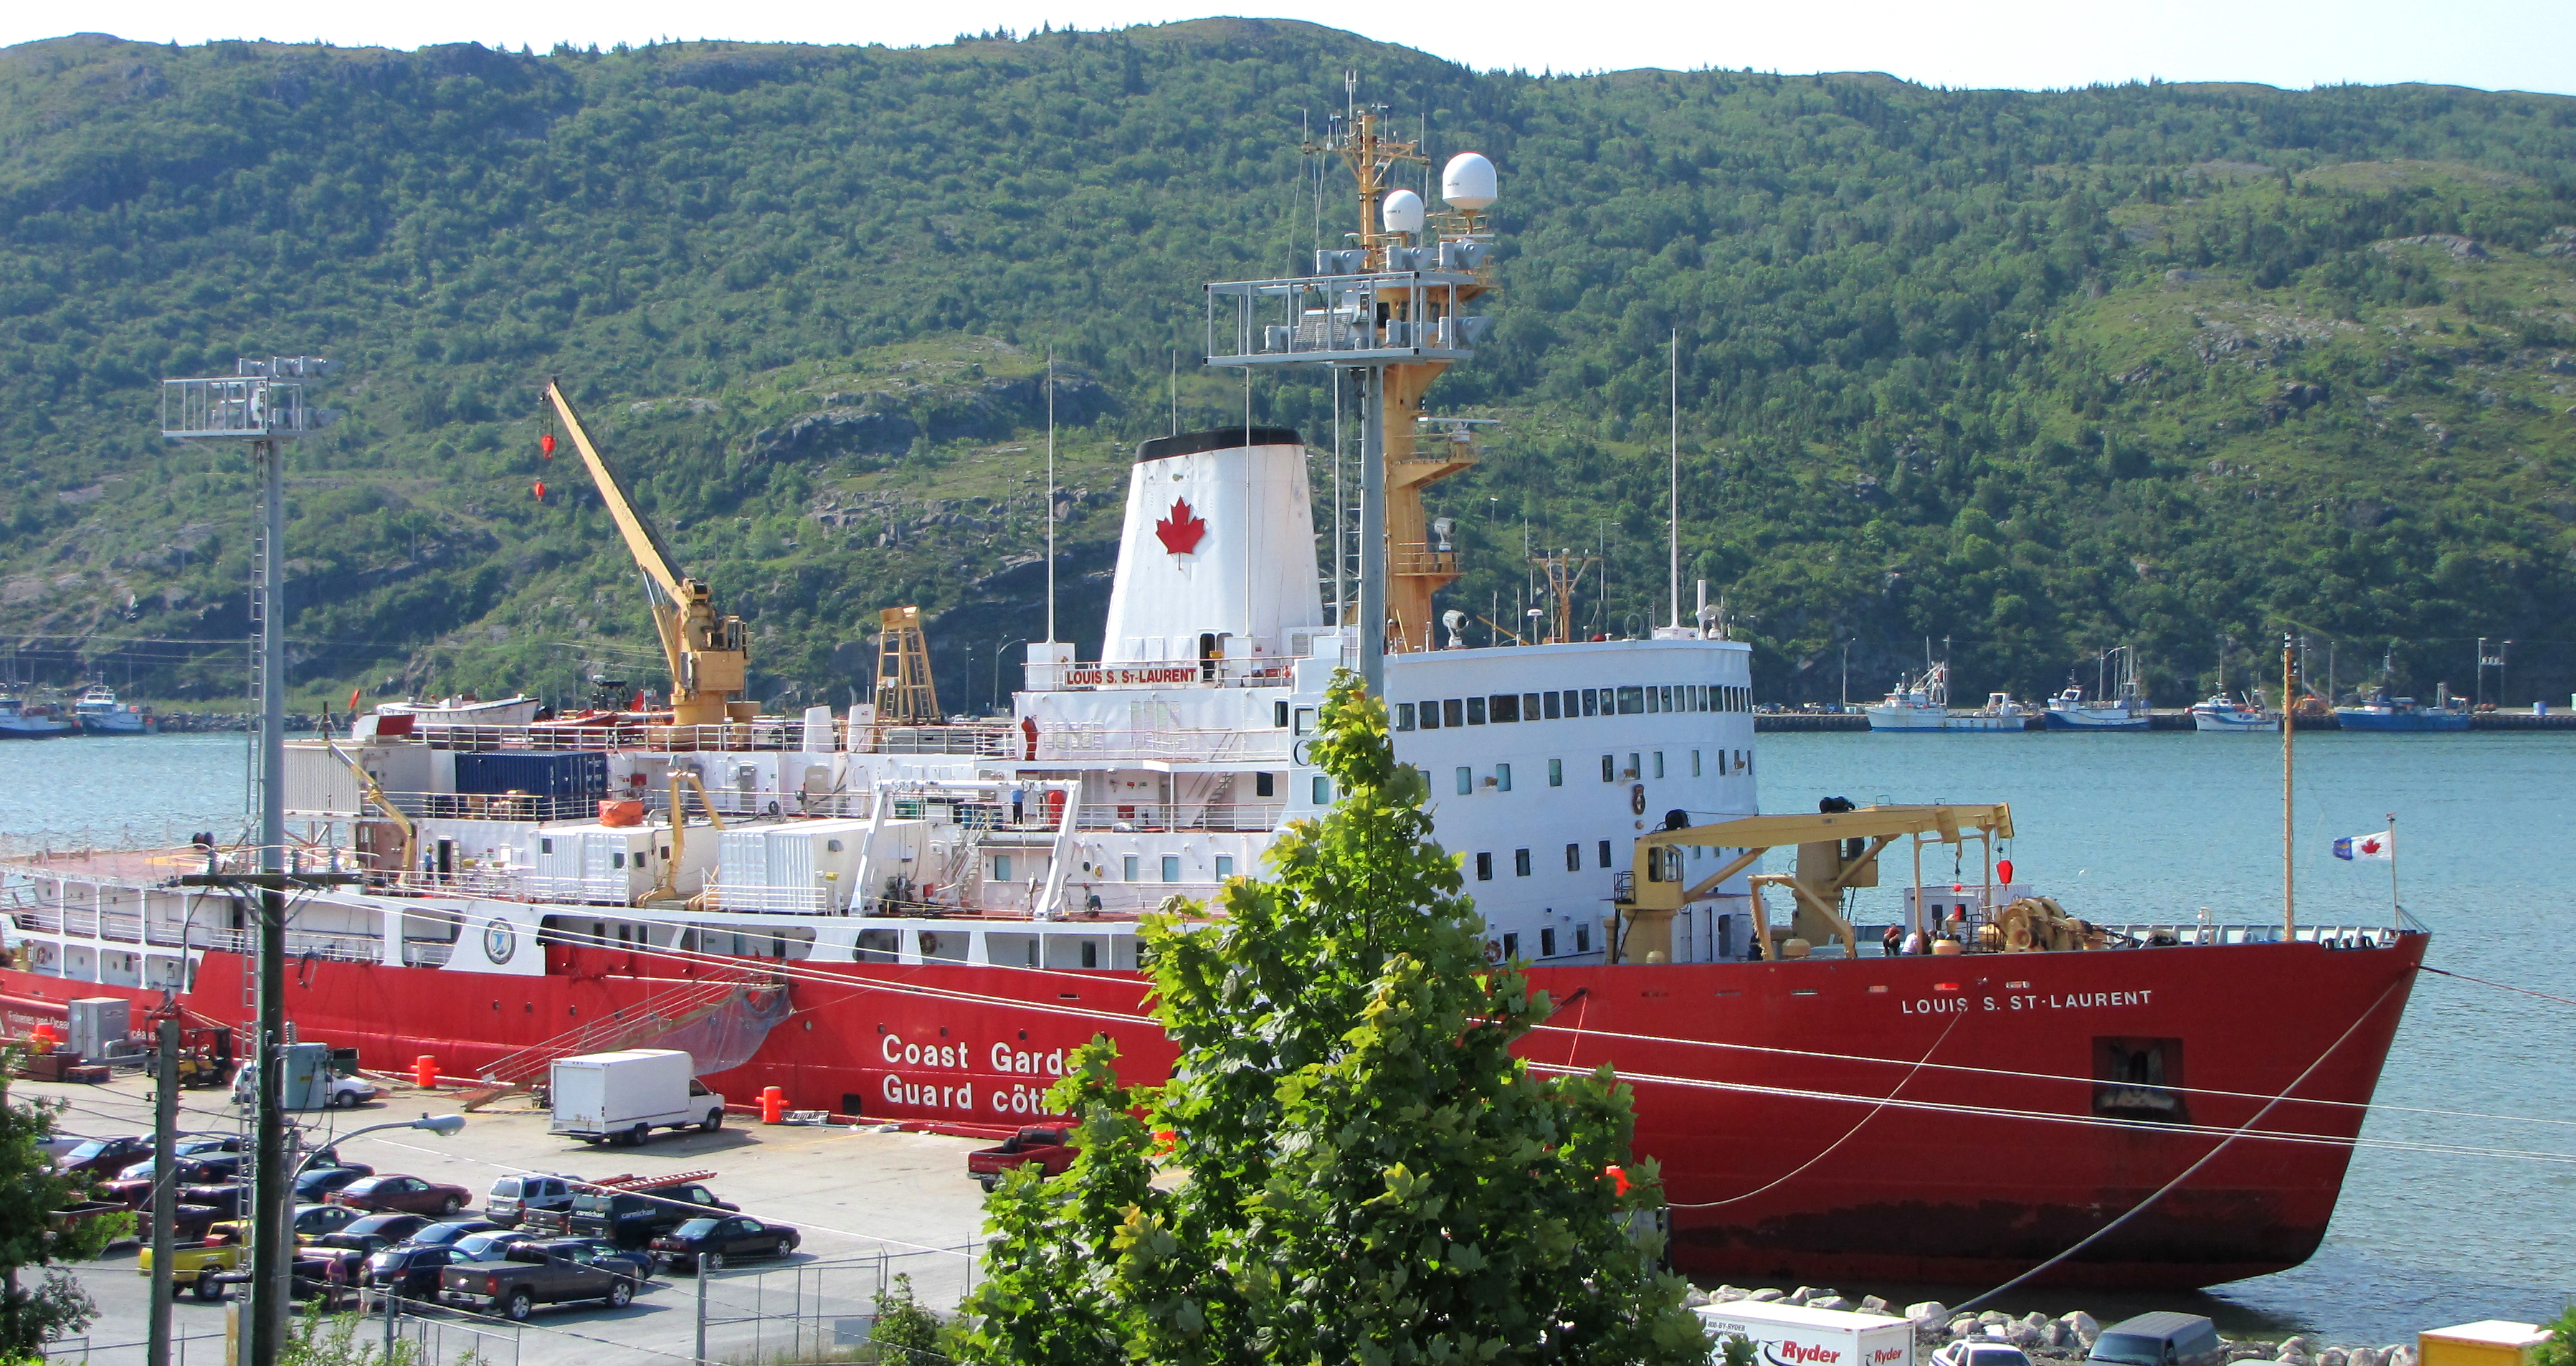 Like a third of the ships in the Coast Guard's fleet, the CCGS Louis S. St. Laurent is now past its operational life cycle. (Gordon E. Robertson)